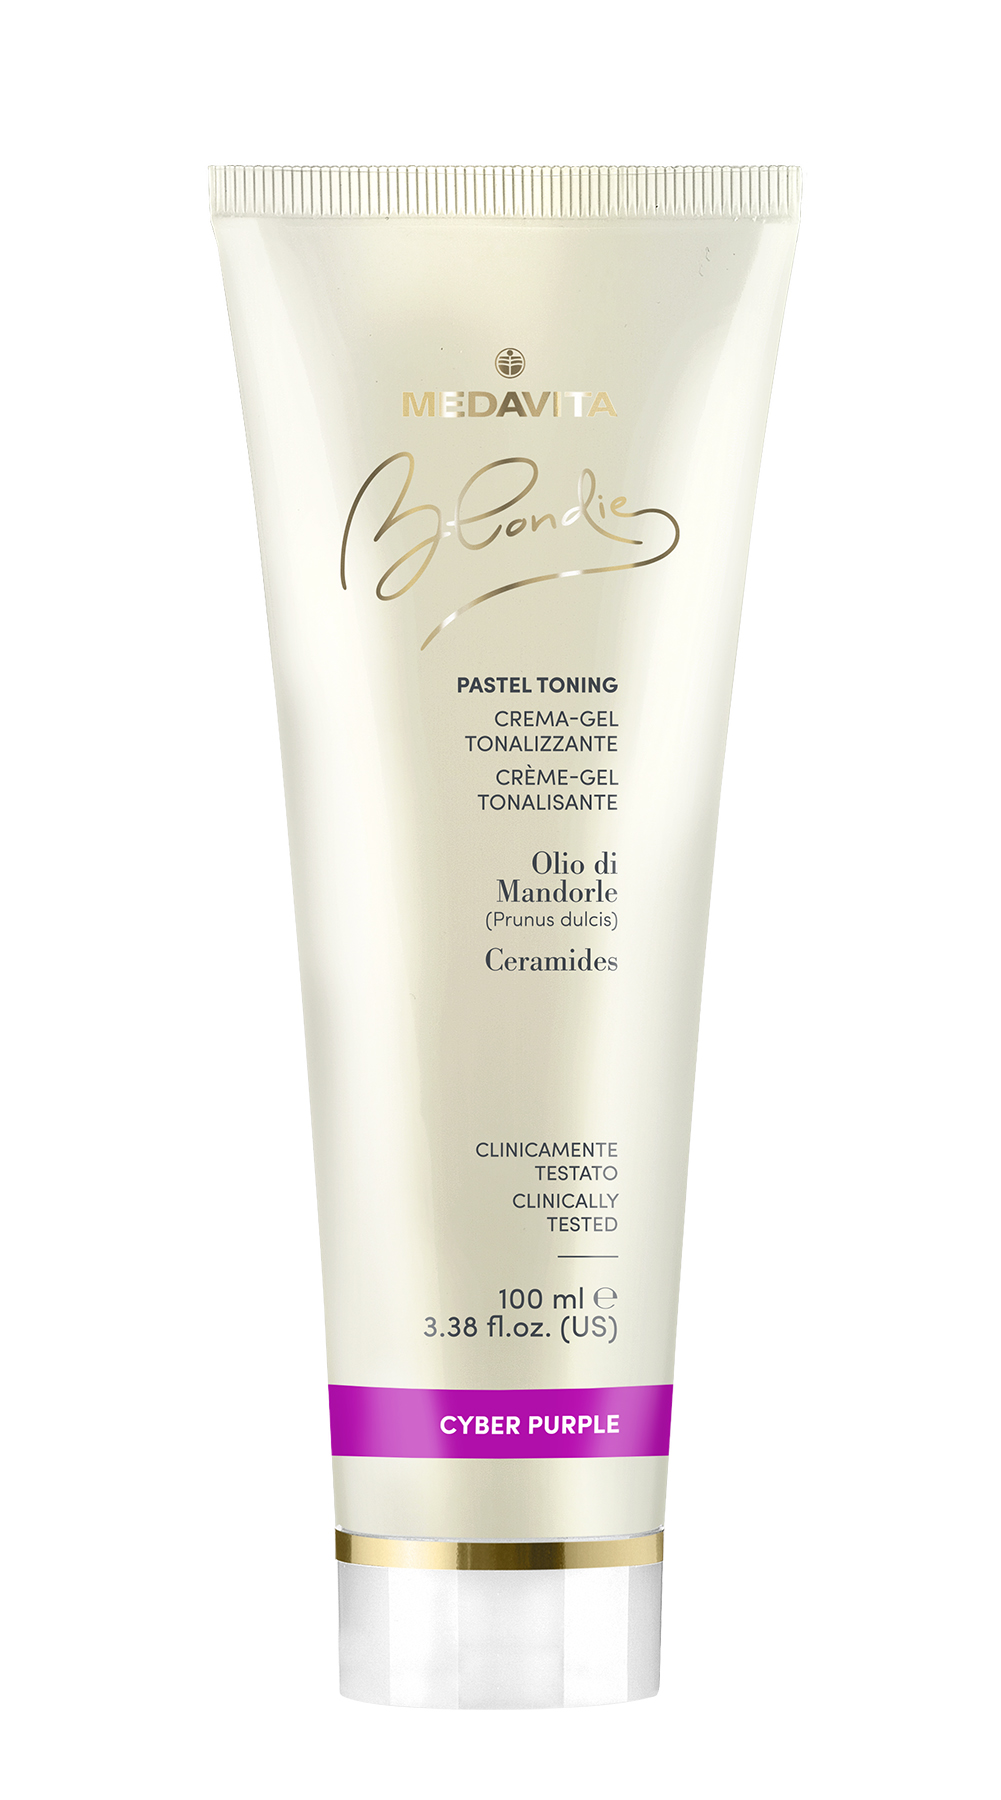 Blondie Tubo Pastel Toning Cyber Purple 100ml